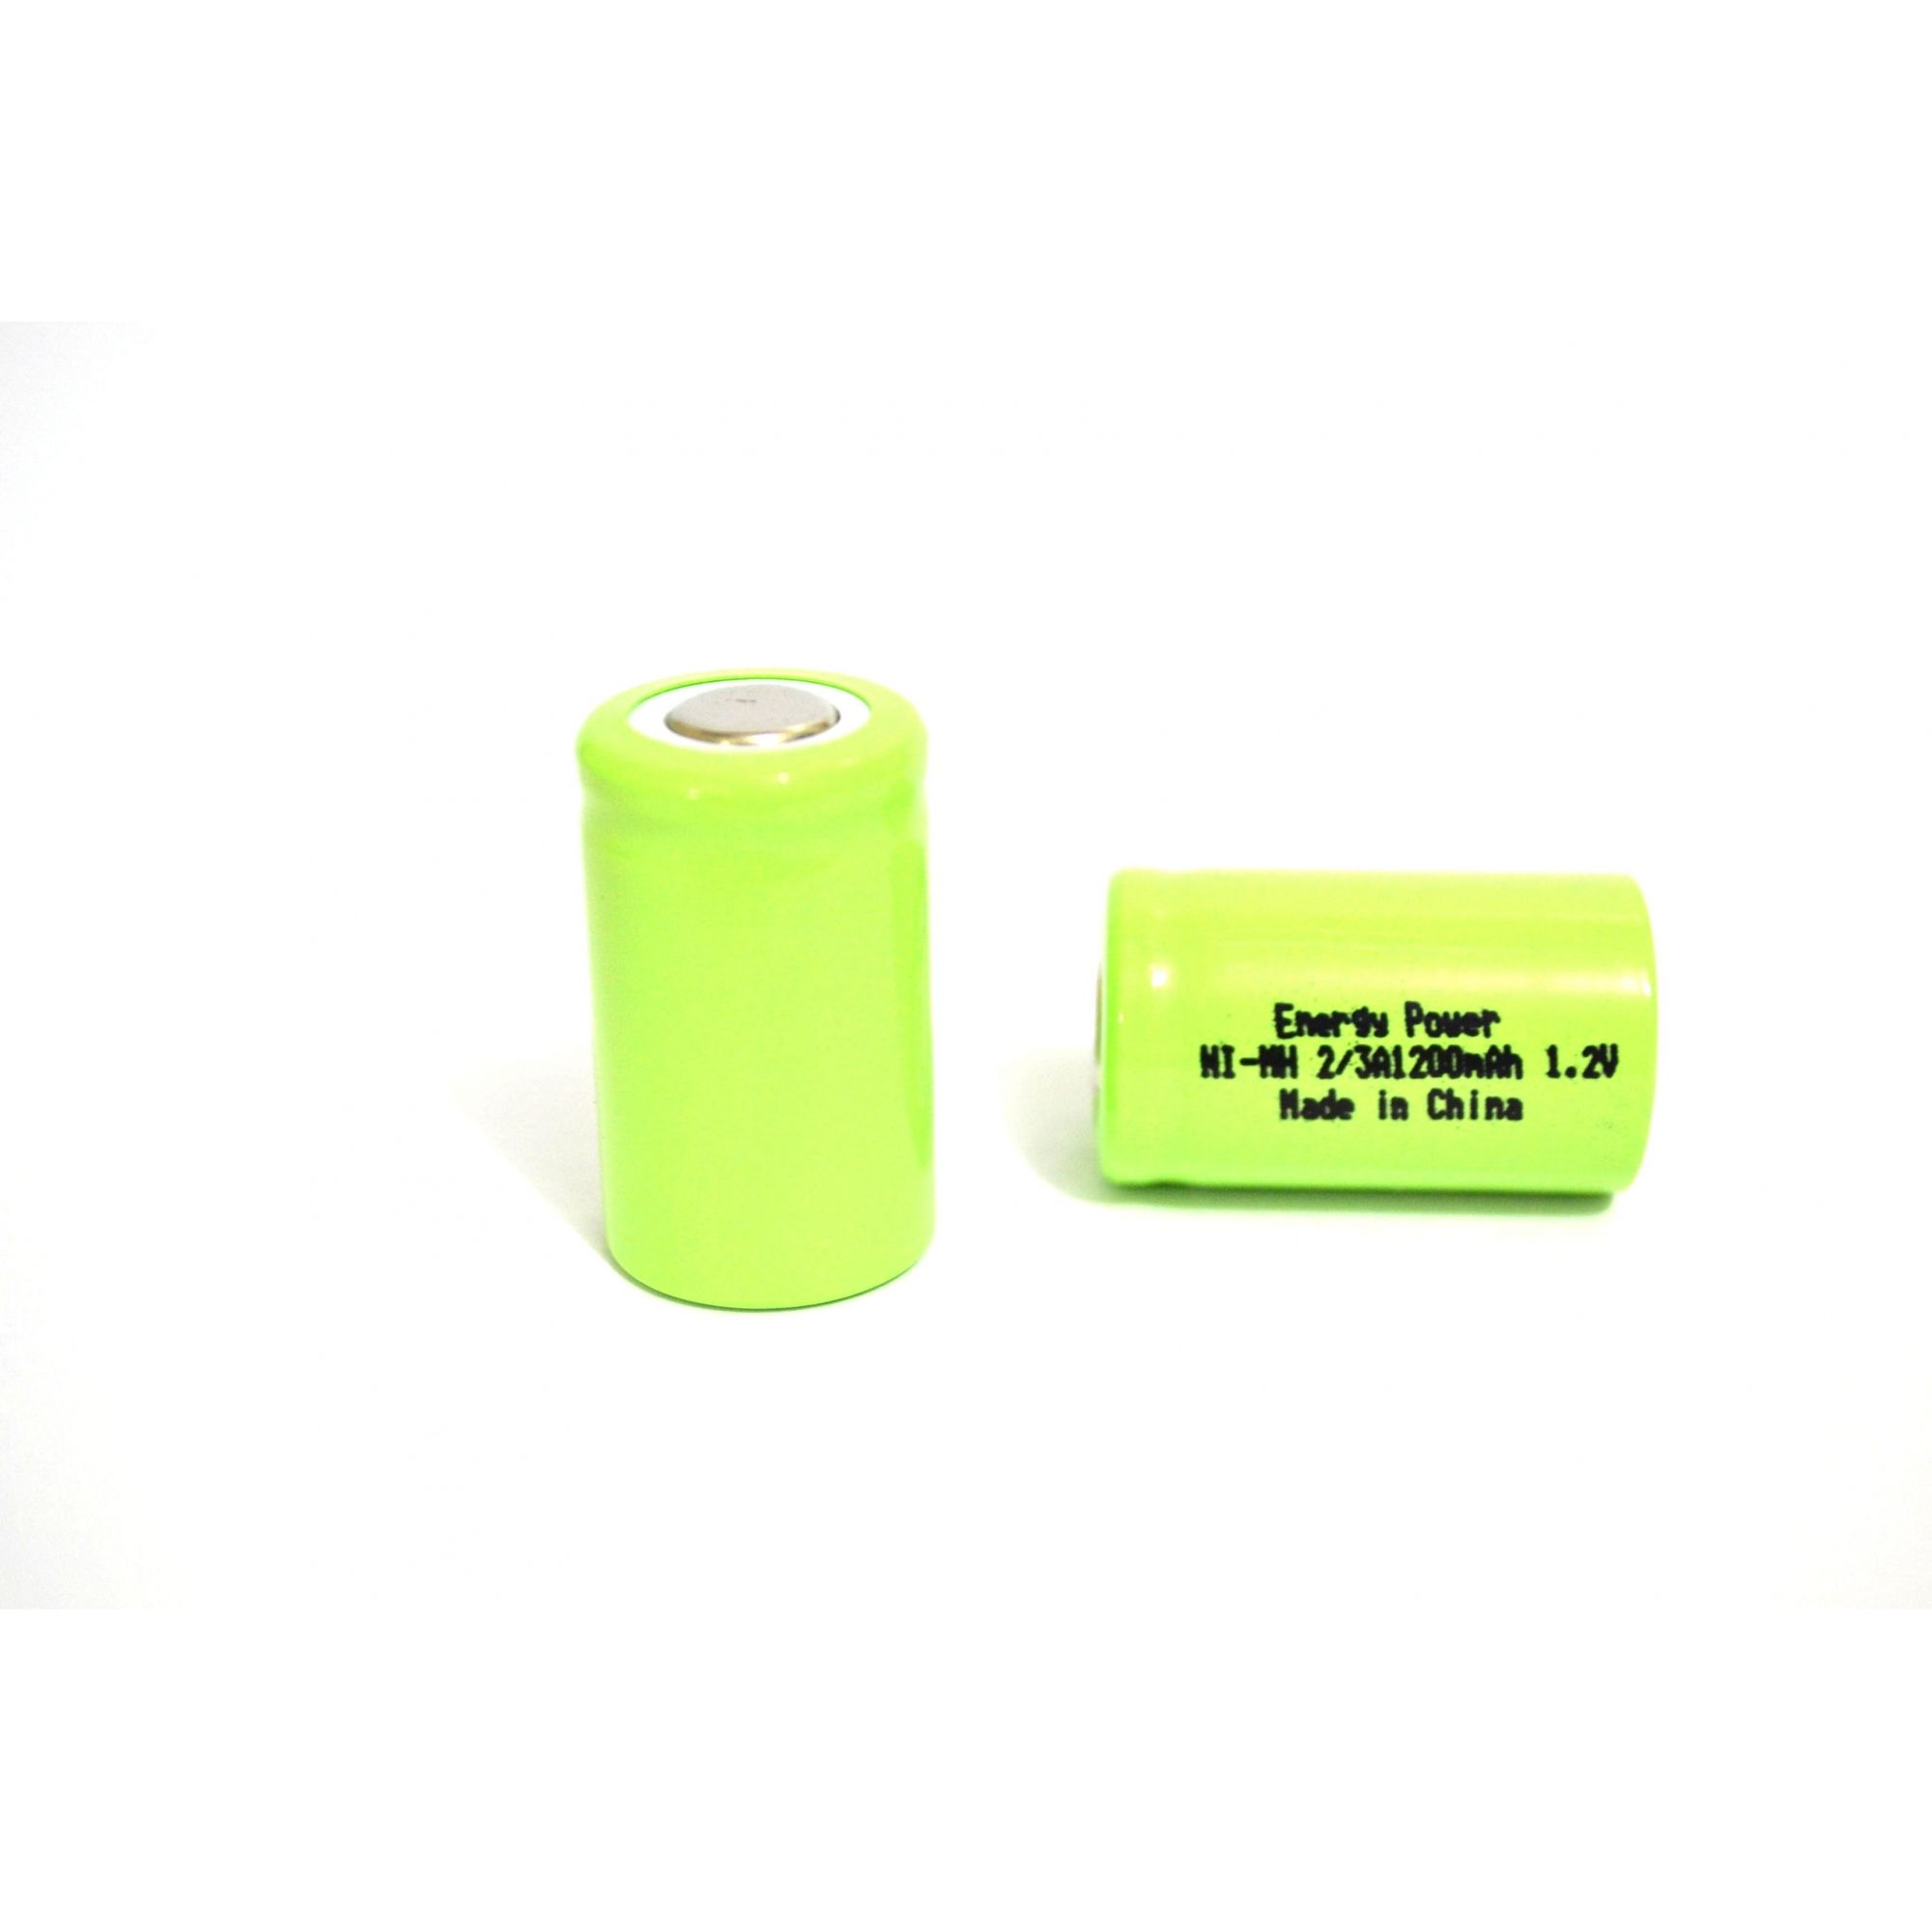 BATERIA ENERGY POWER  2/3A 1200MAH 1,2V NI-MH